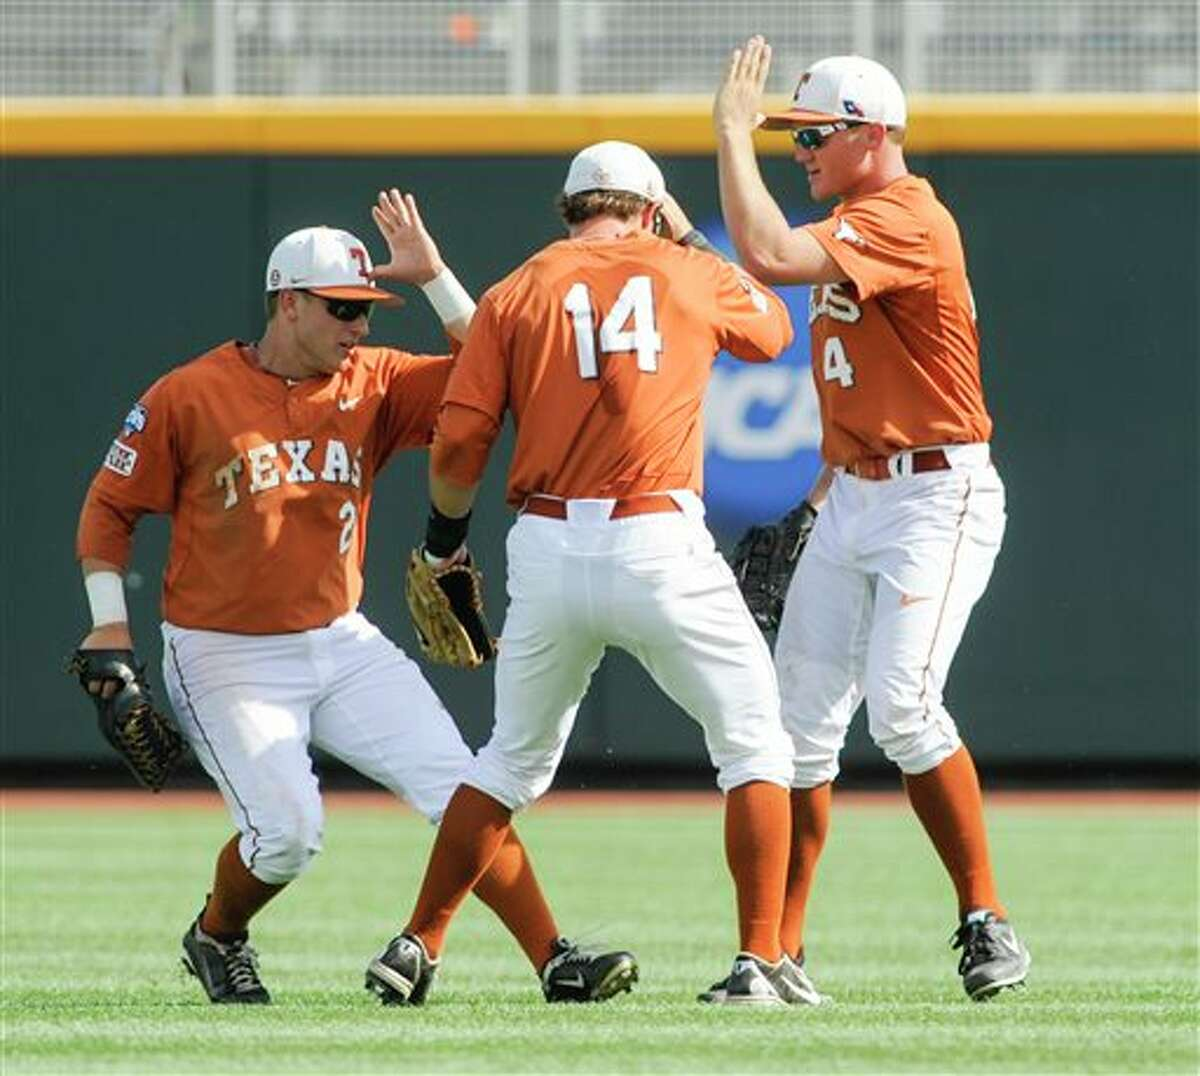 From left to right, Texas' Mark Payton, Ben Johnson and Collin Shaw celebrate after winning 4-0 against Vanderbilt in an NCAA baseball College World Series game in Omaha, Neb., Friday, June 20, 2014. (AP Photo/Eric Francis)